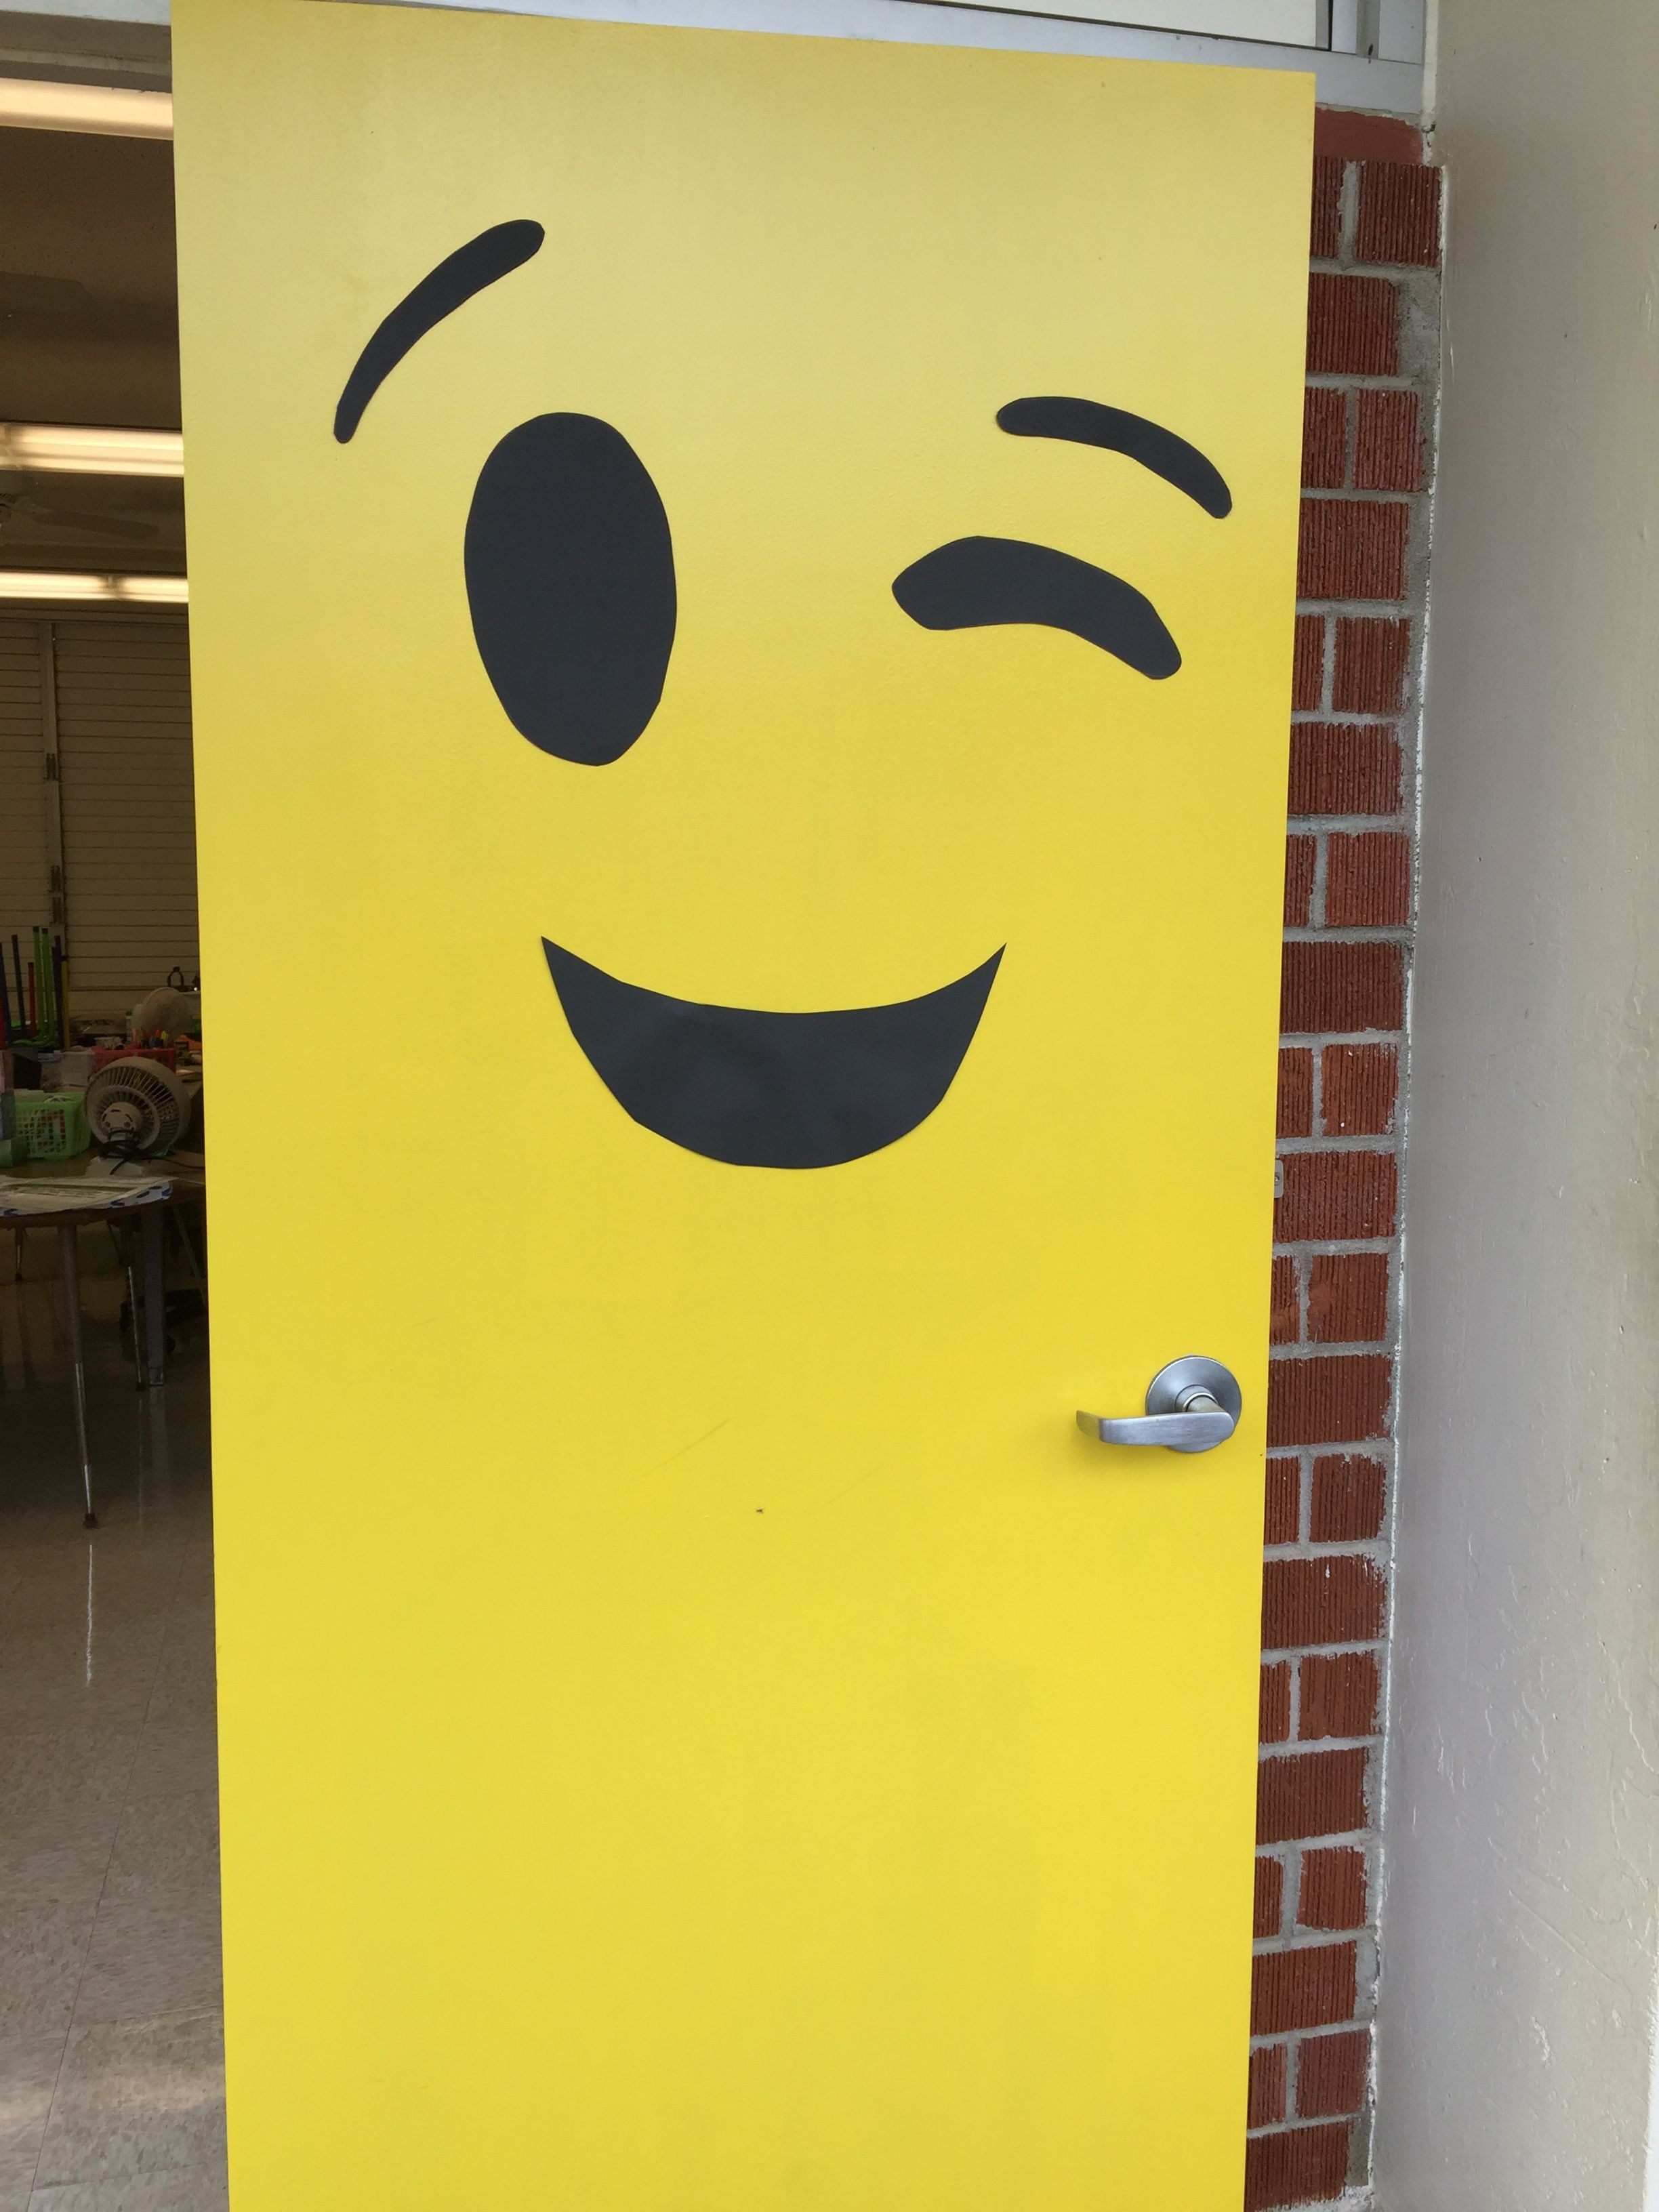 Emoji Door & Emoji Door | Puertas | Pinterest | Emoji Doors and Bulletin board